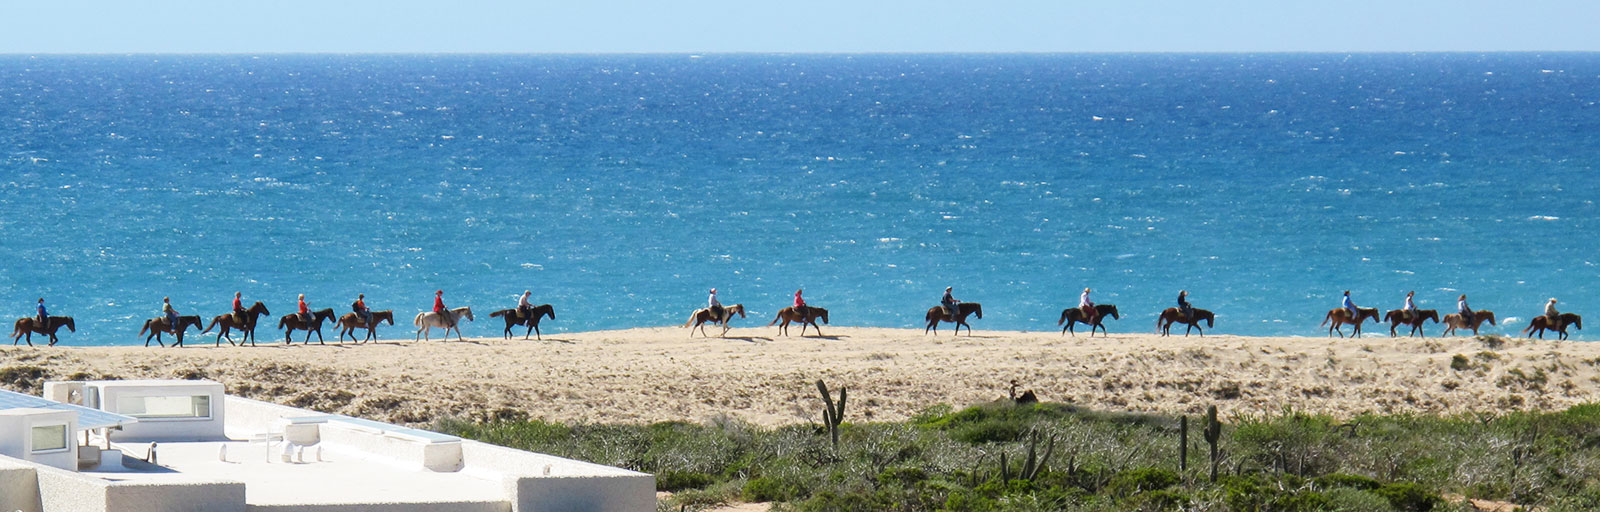 Horseback Riding & Yoga Retreat in Mexico: Beach Ride with Ocean View